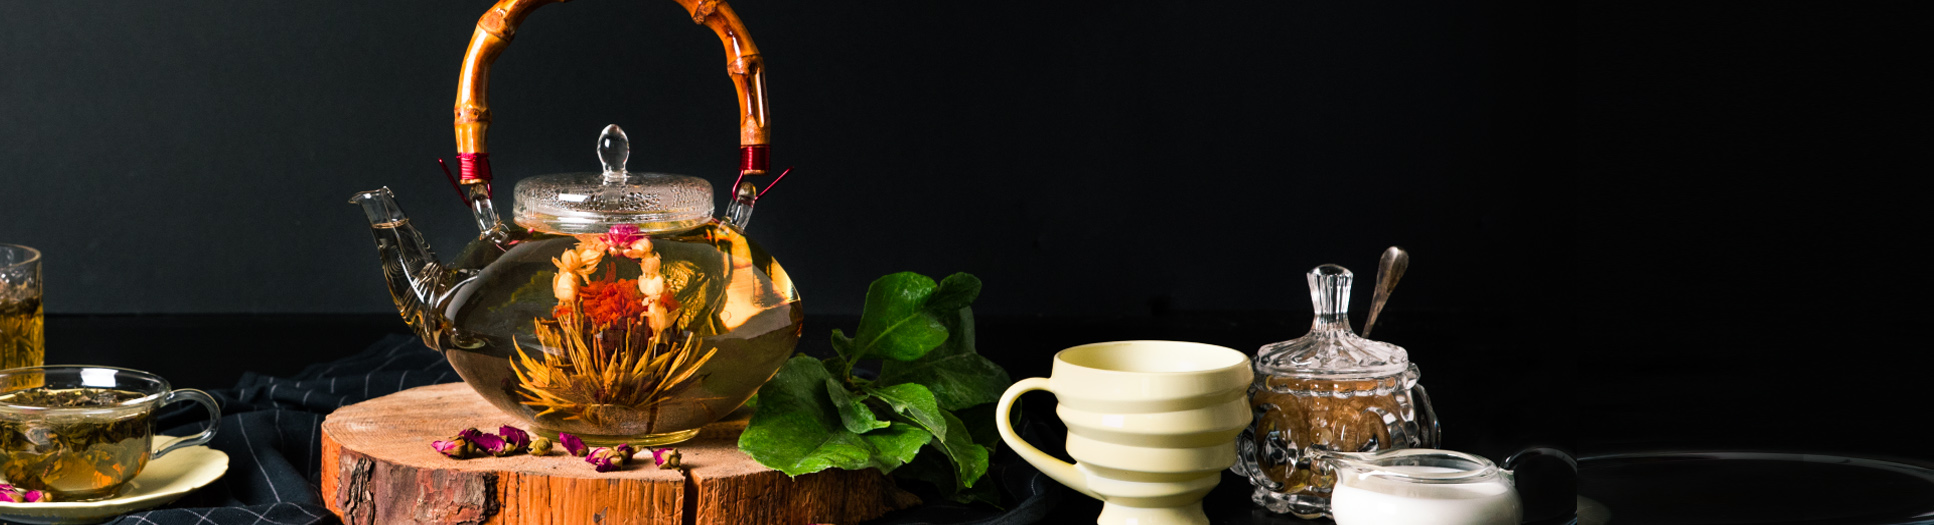 tea_shape_hero_bg